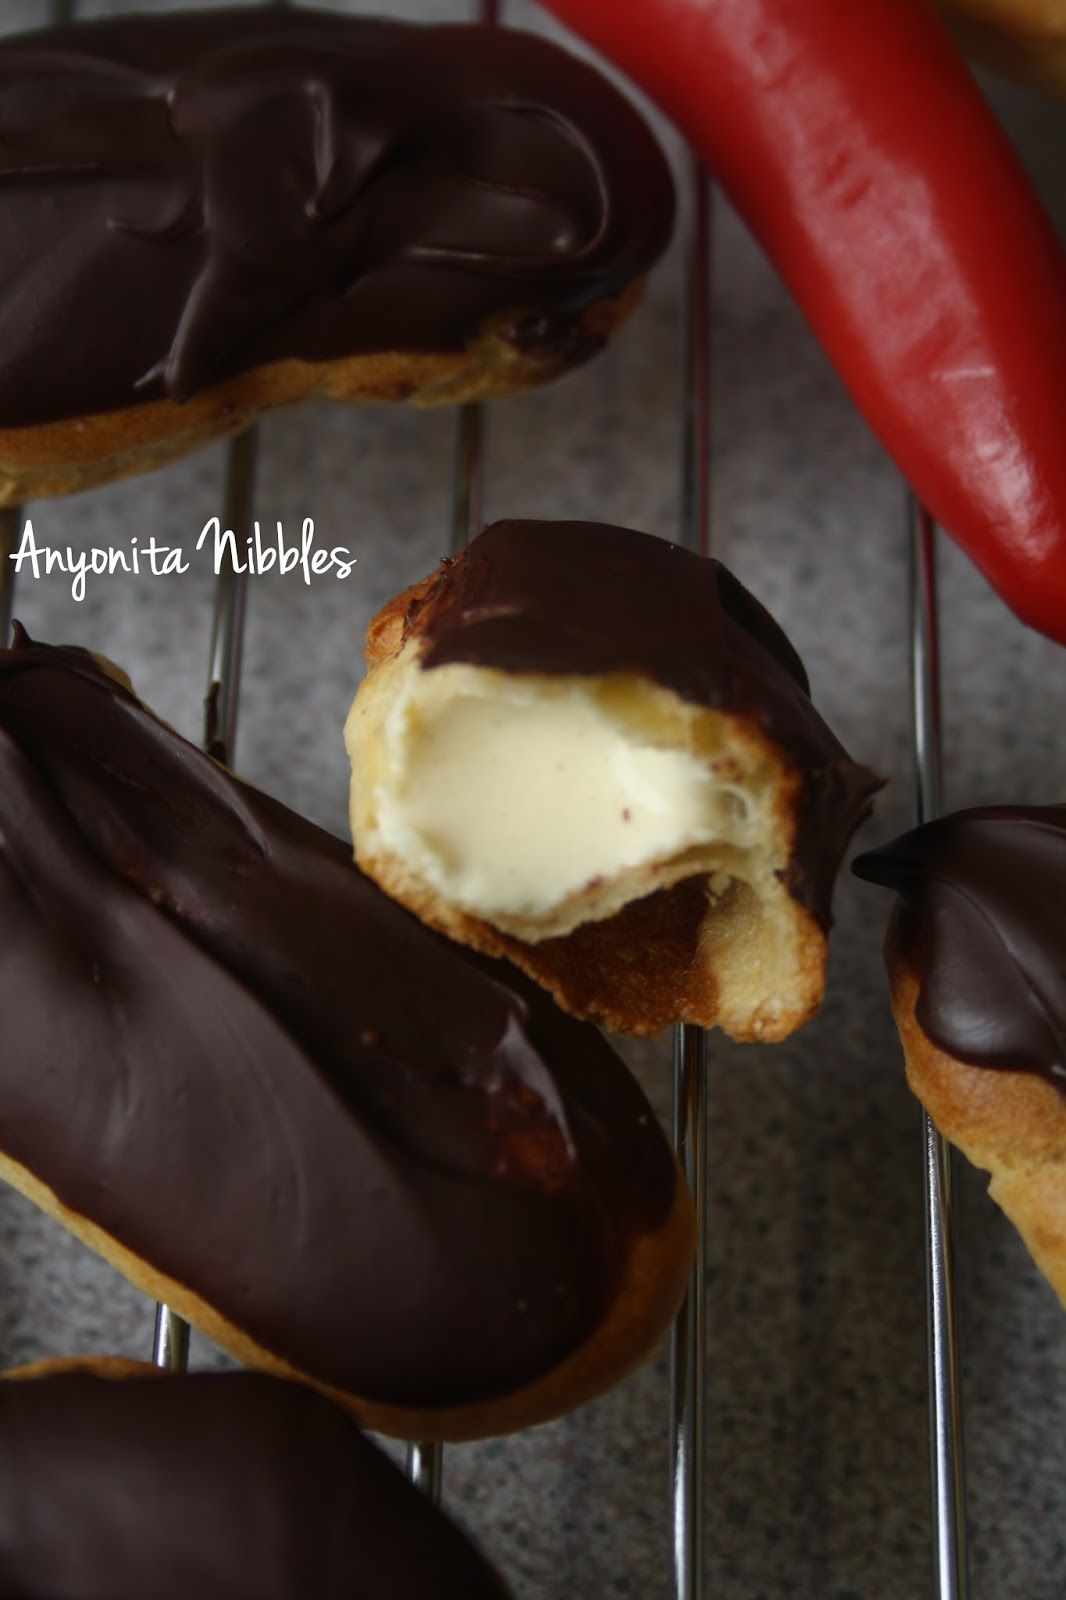 Inside a chilli chocolate eclair with cinnamon custard cream from Anyonita Nibbles